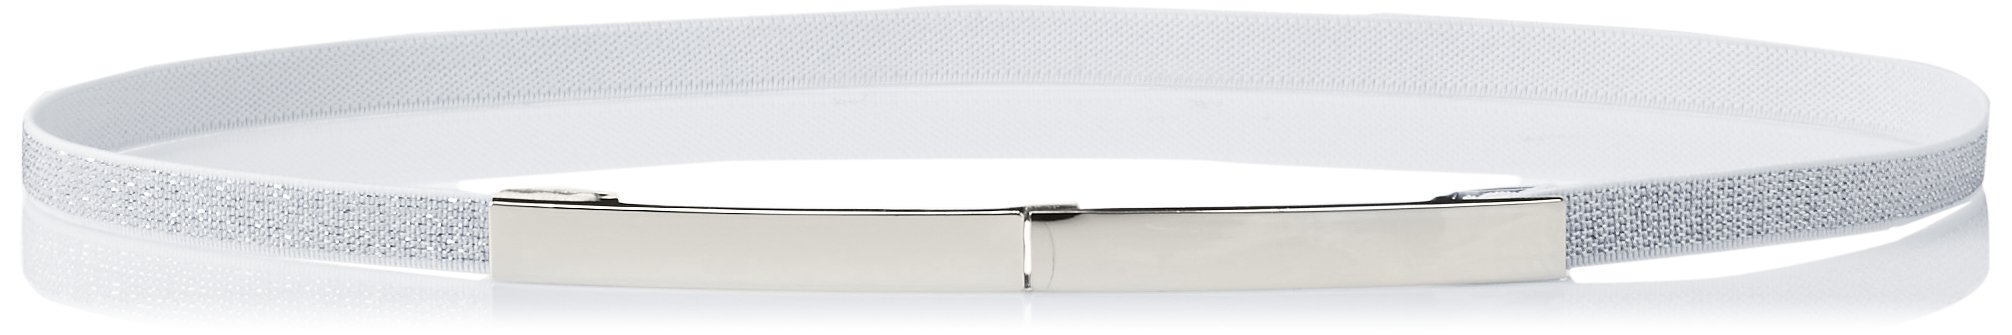 elise m. Women's Lohan- Fabric Stretch Belt with Gold Plaque Closure, Silver, One Size